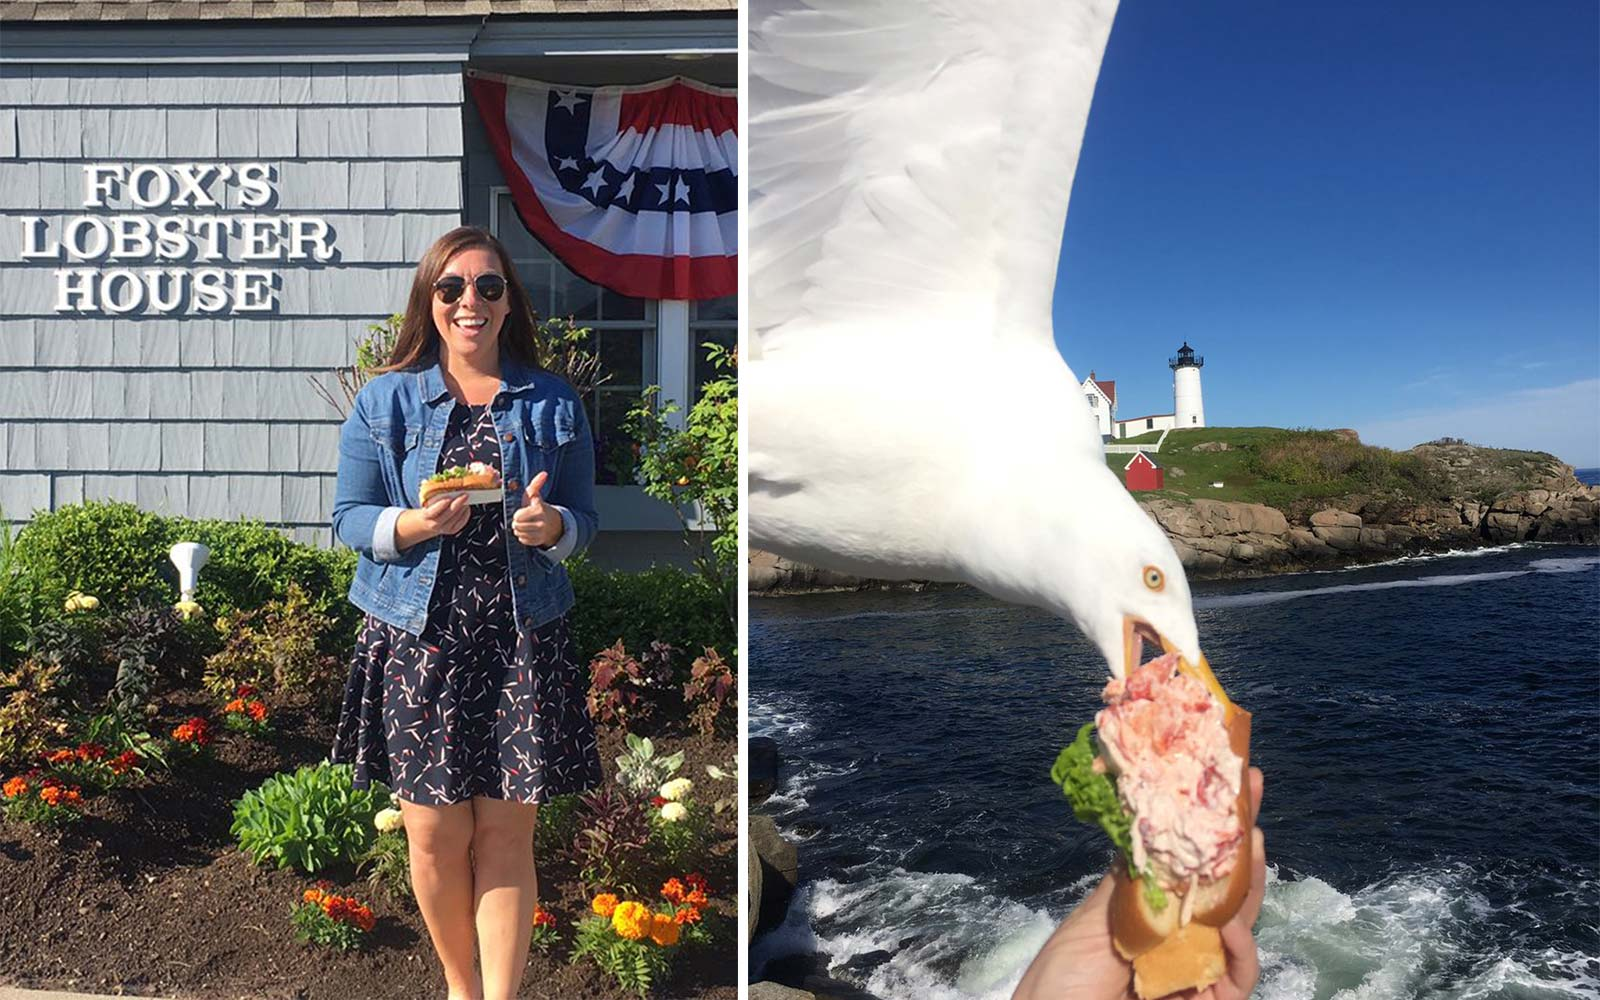 This Woman Snapped a Photo at the Exact Moment a Seagull Was Stealing Her $21 Lobster Roll